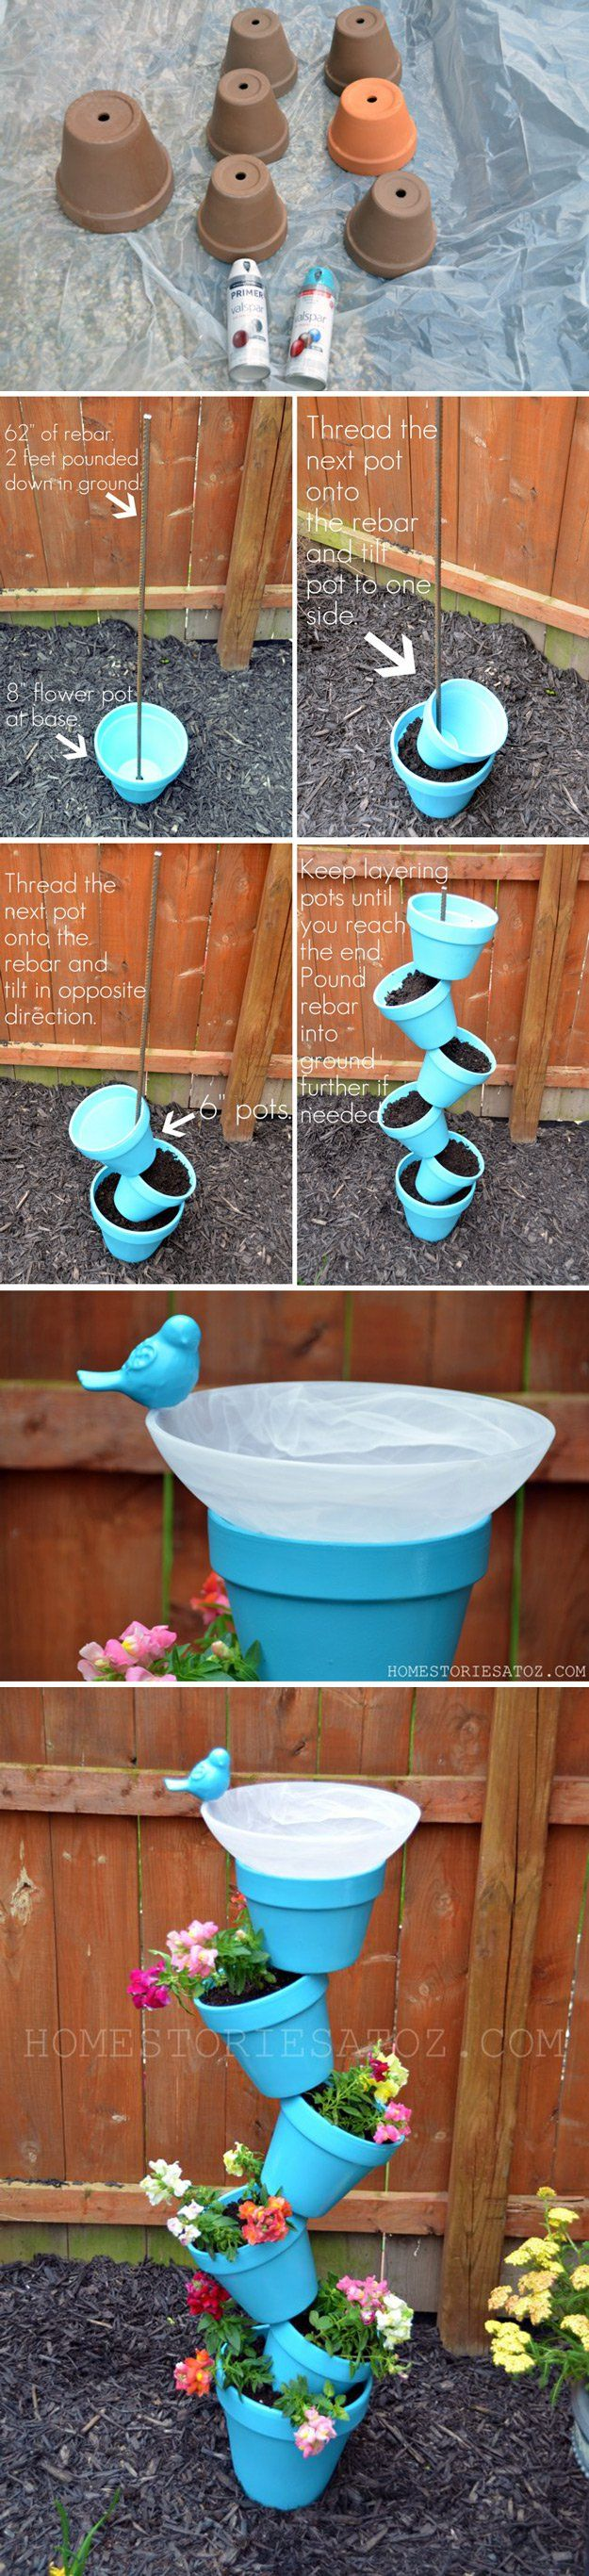 Bloempot Met Vogeltjes 18 Easy Backyard Projects To Diy With The Family